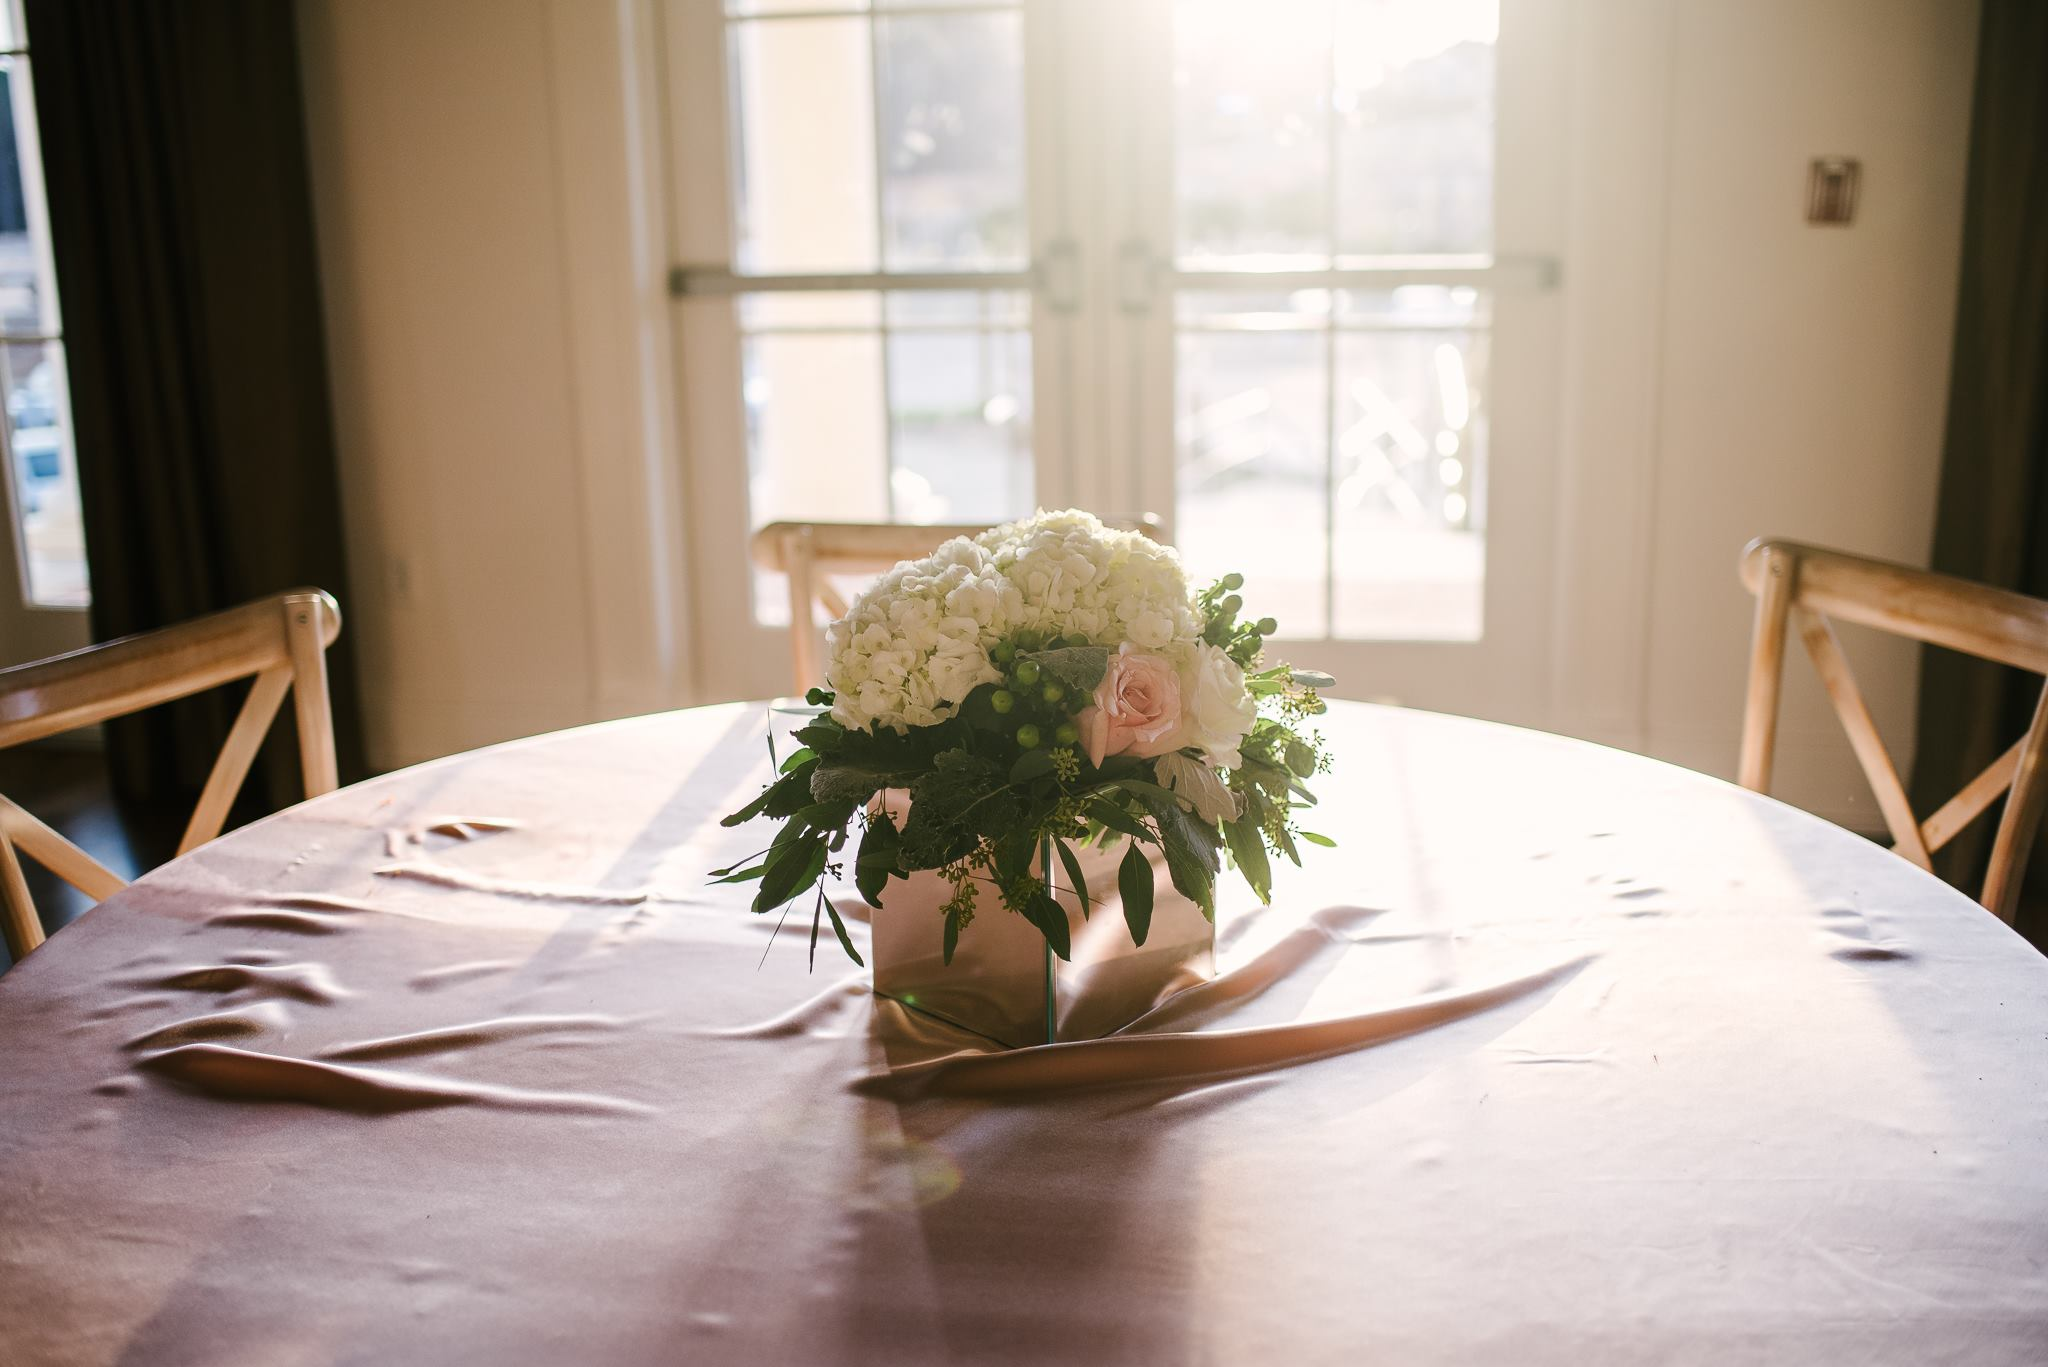 Gross Floral Centerpiece 1.jpg